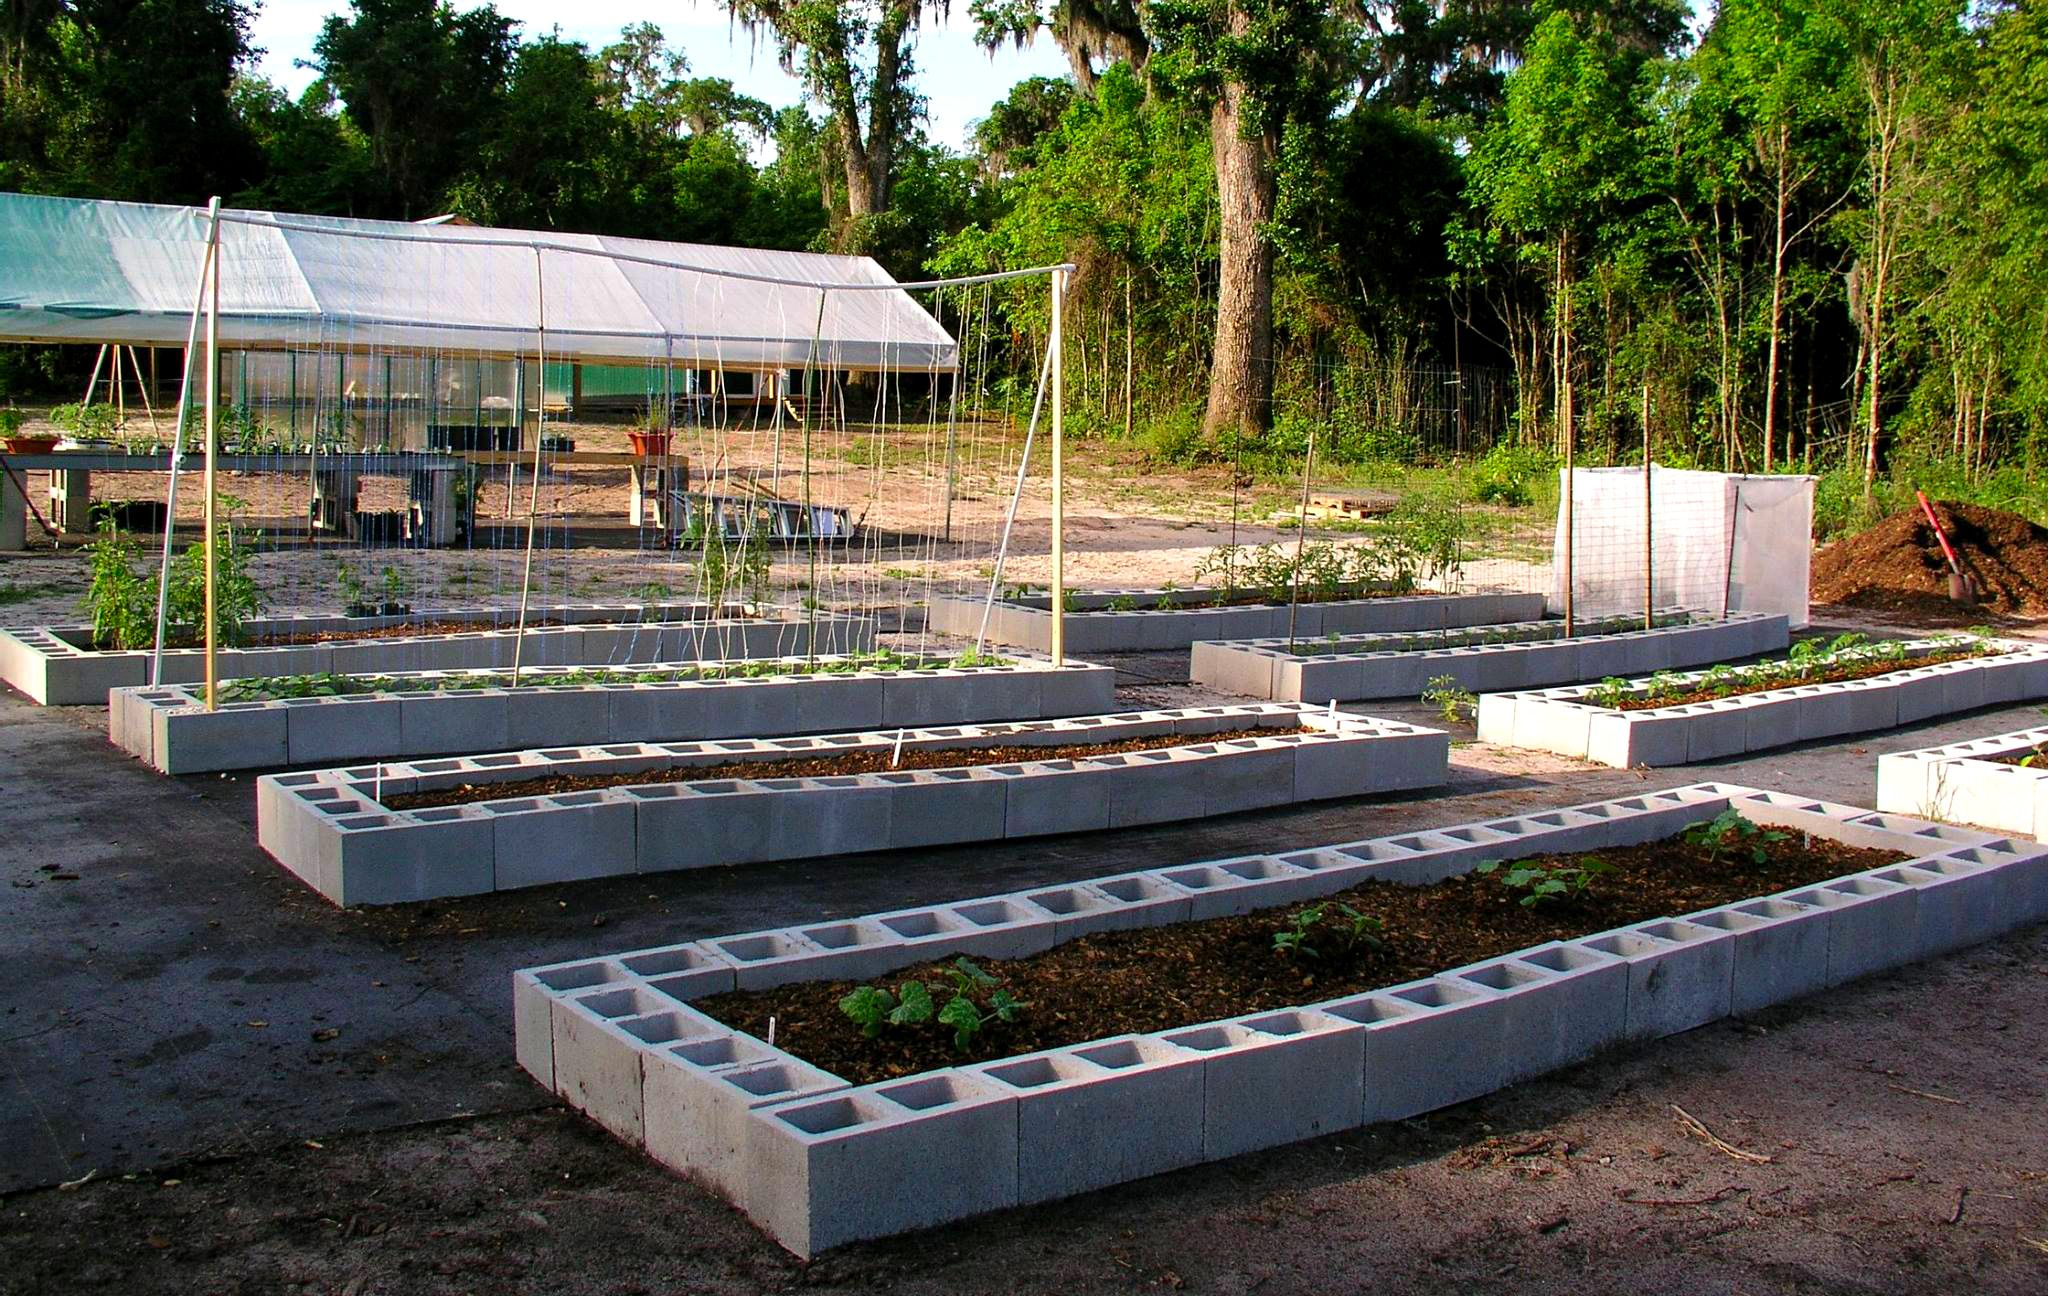 Florida Raised Beds Gardens Growin' Crazy Acres Raised